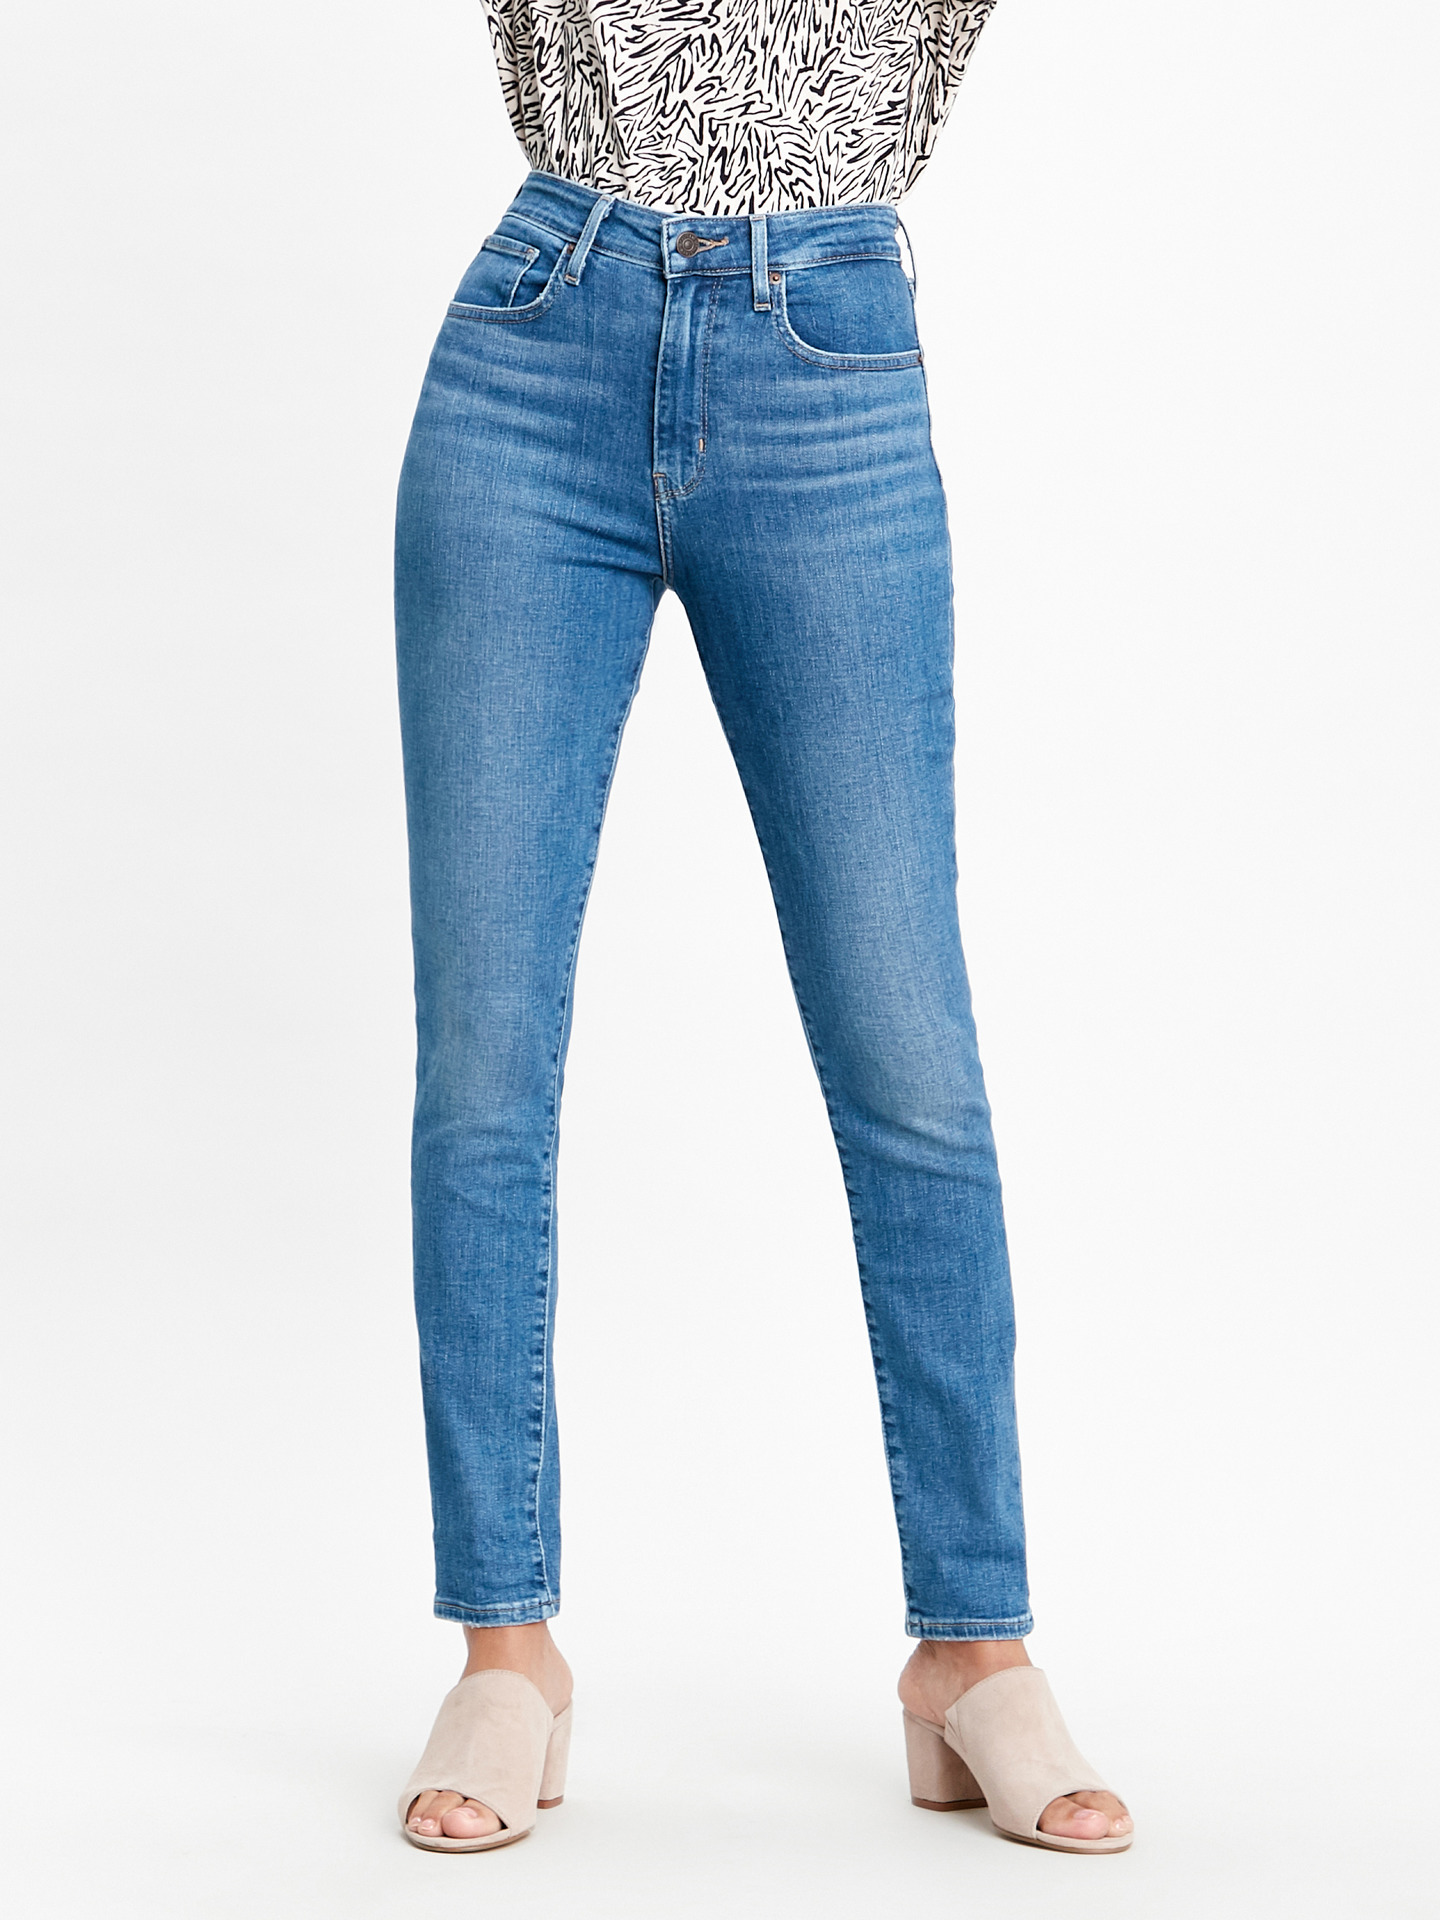 721™ High Rise Skinny Jeans Levi's® (1)